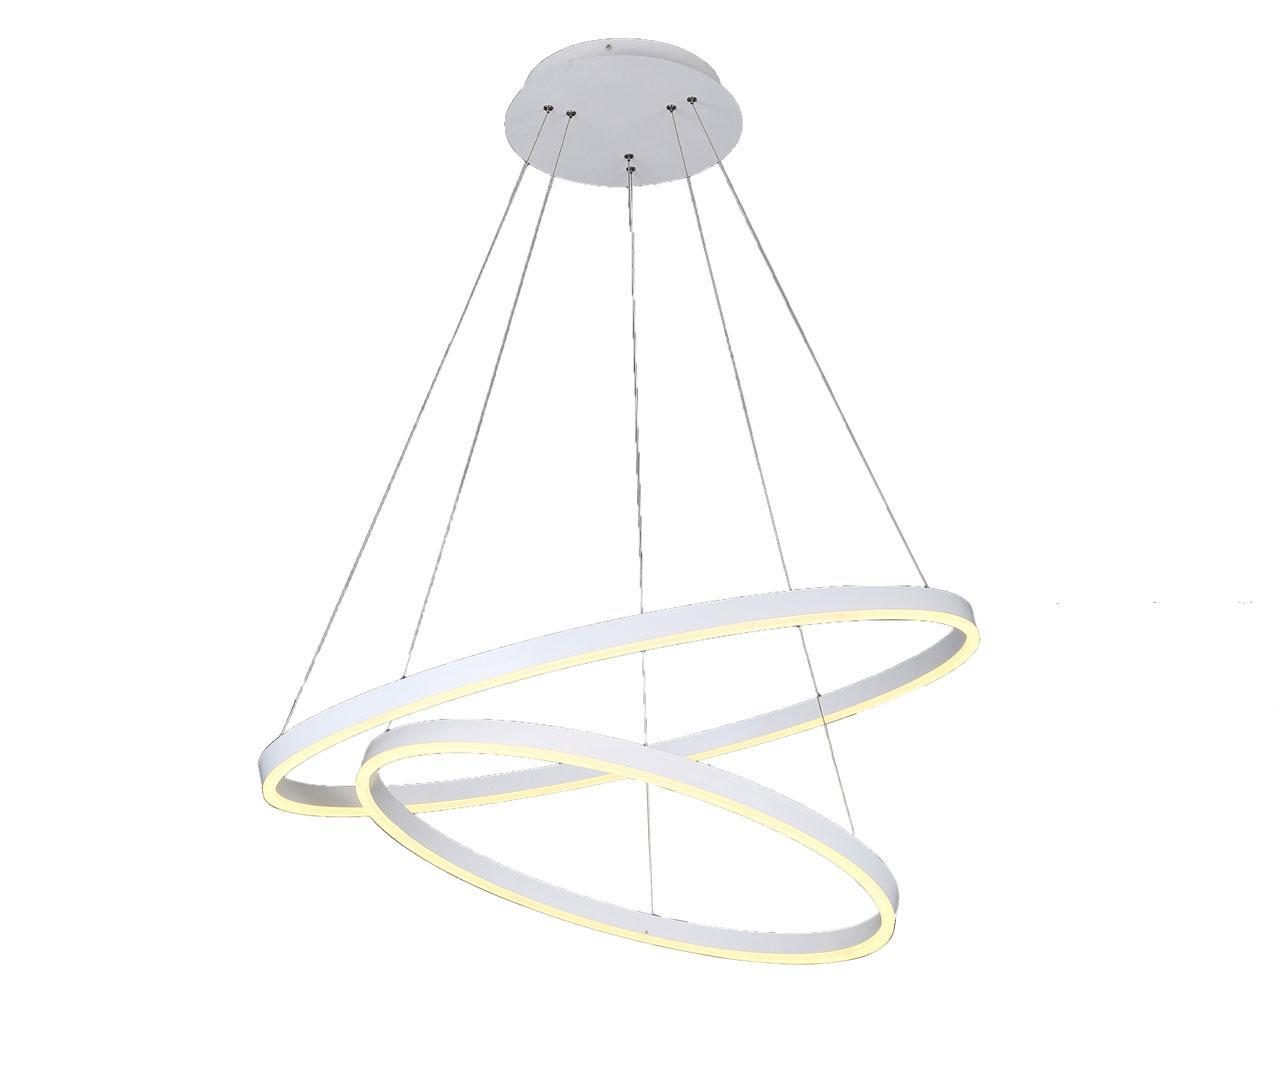 Подвесной светодиодный светильник Kink Light Тор 08220,01(3000K-6000K) diy 3w 3000k 315lm warm white light round cob led module 9 11v